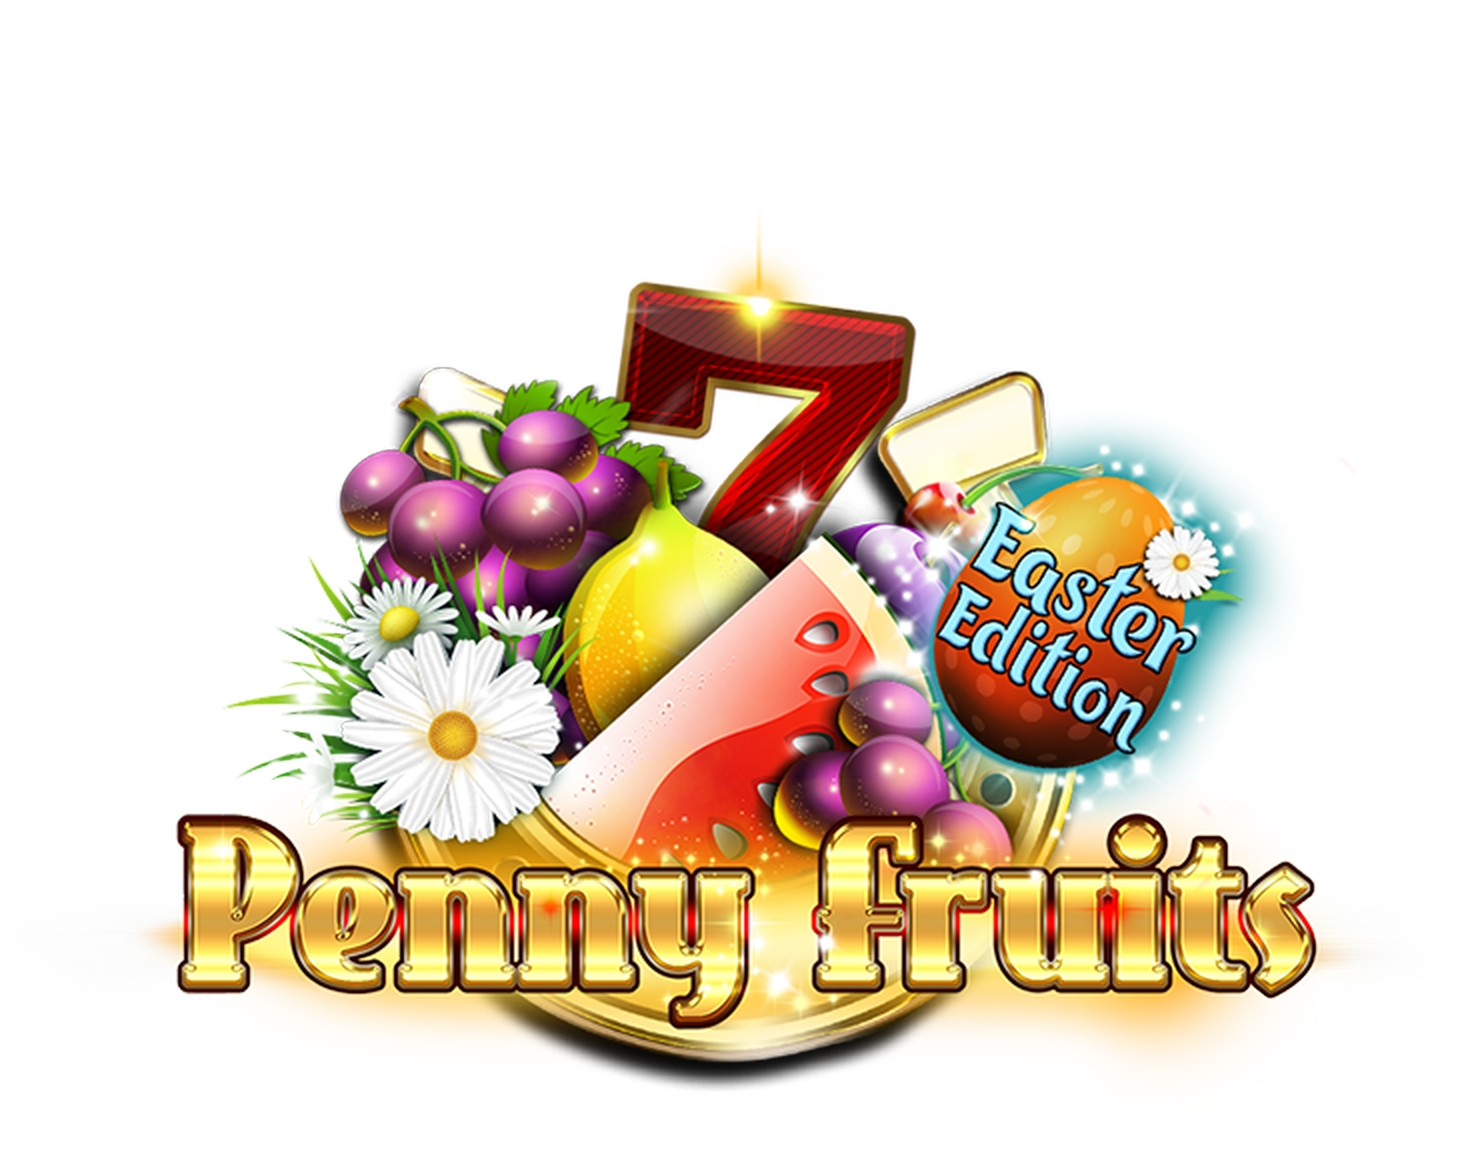 The Penny Fruits Easter Edition Online Slot Demo Game by Spinomenal